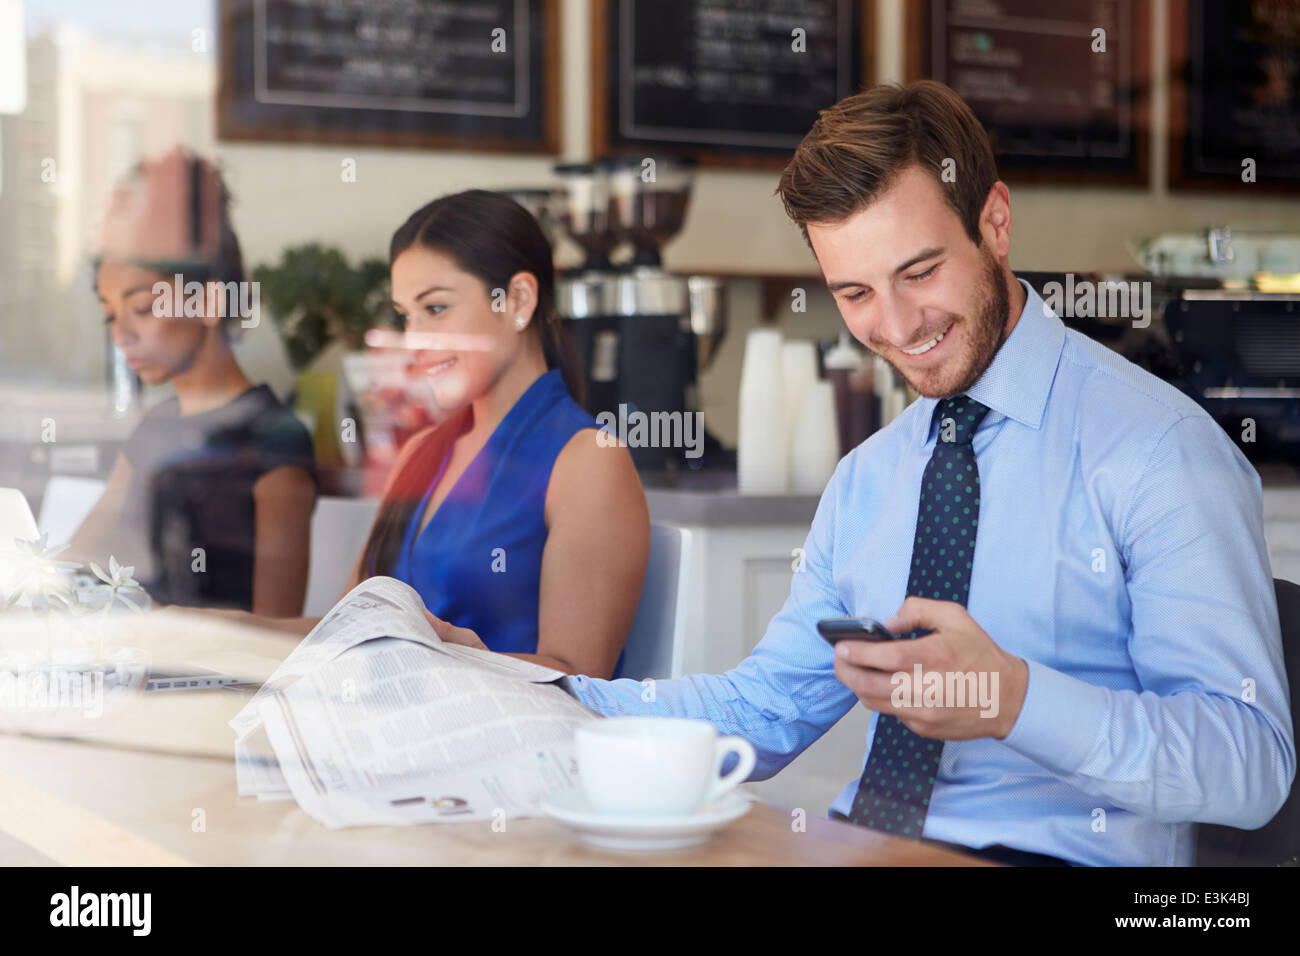 Businessman With Mobile Phone And Newspaper In Coffee Shop - Stock Image